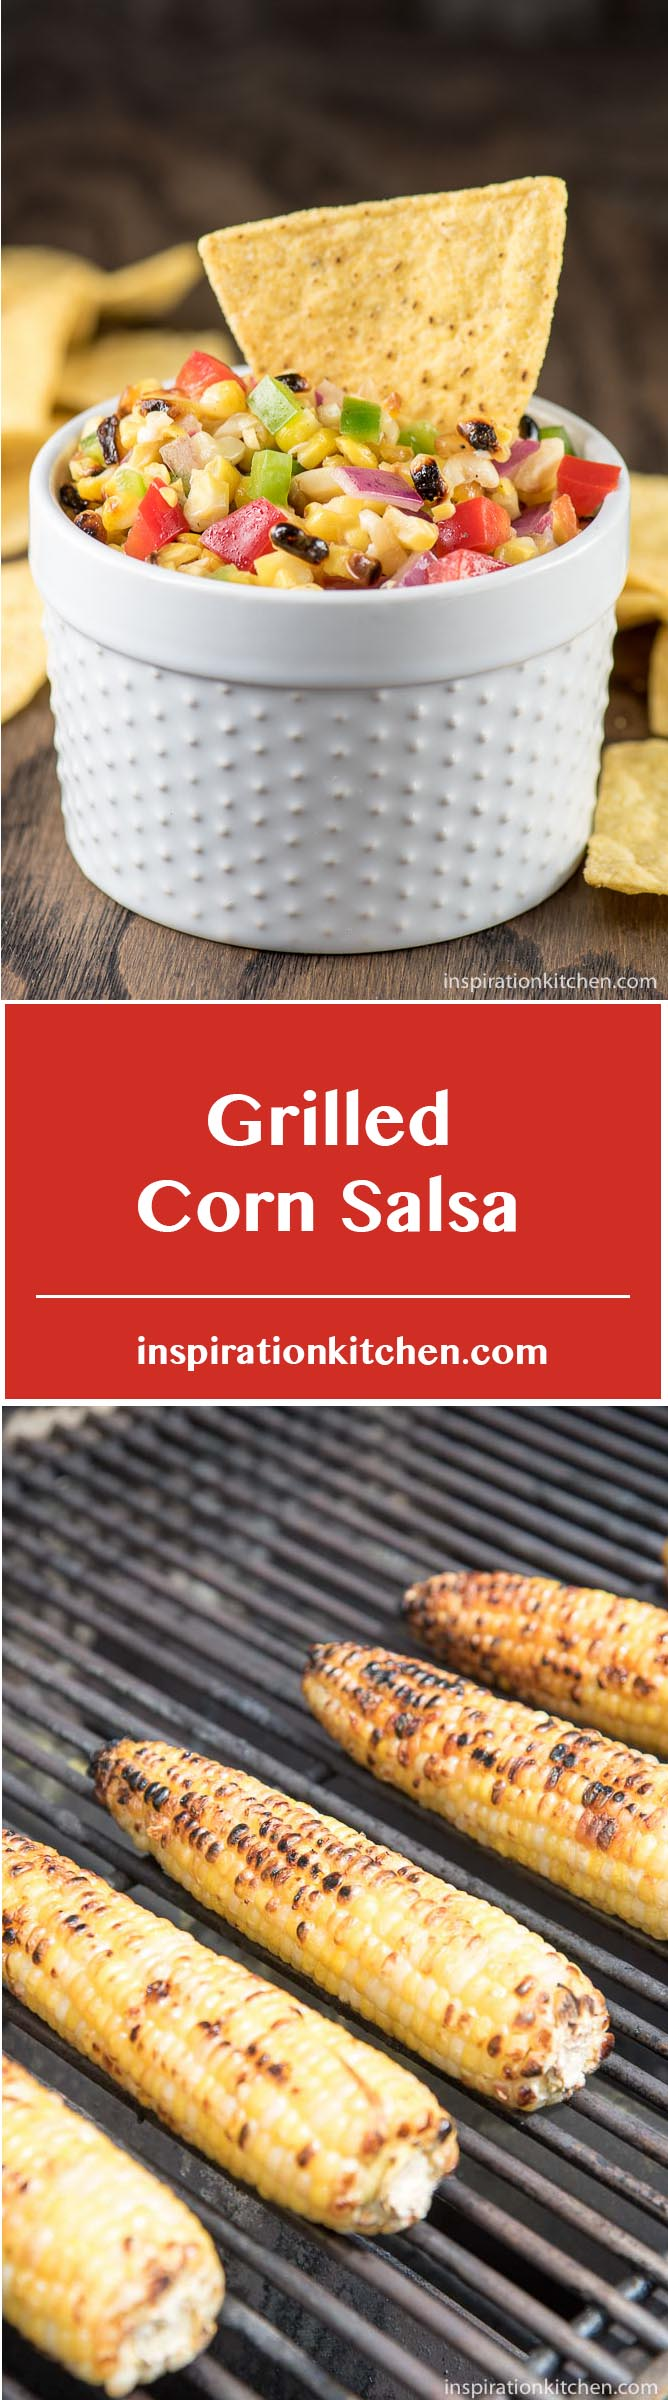 Grilled Corn Salsa - inspirationkitchen.com